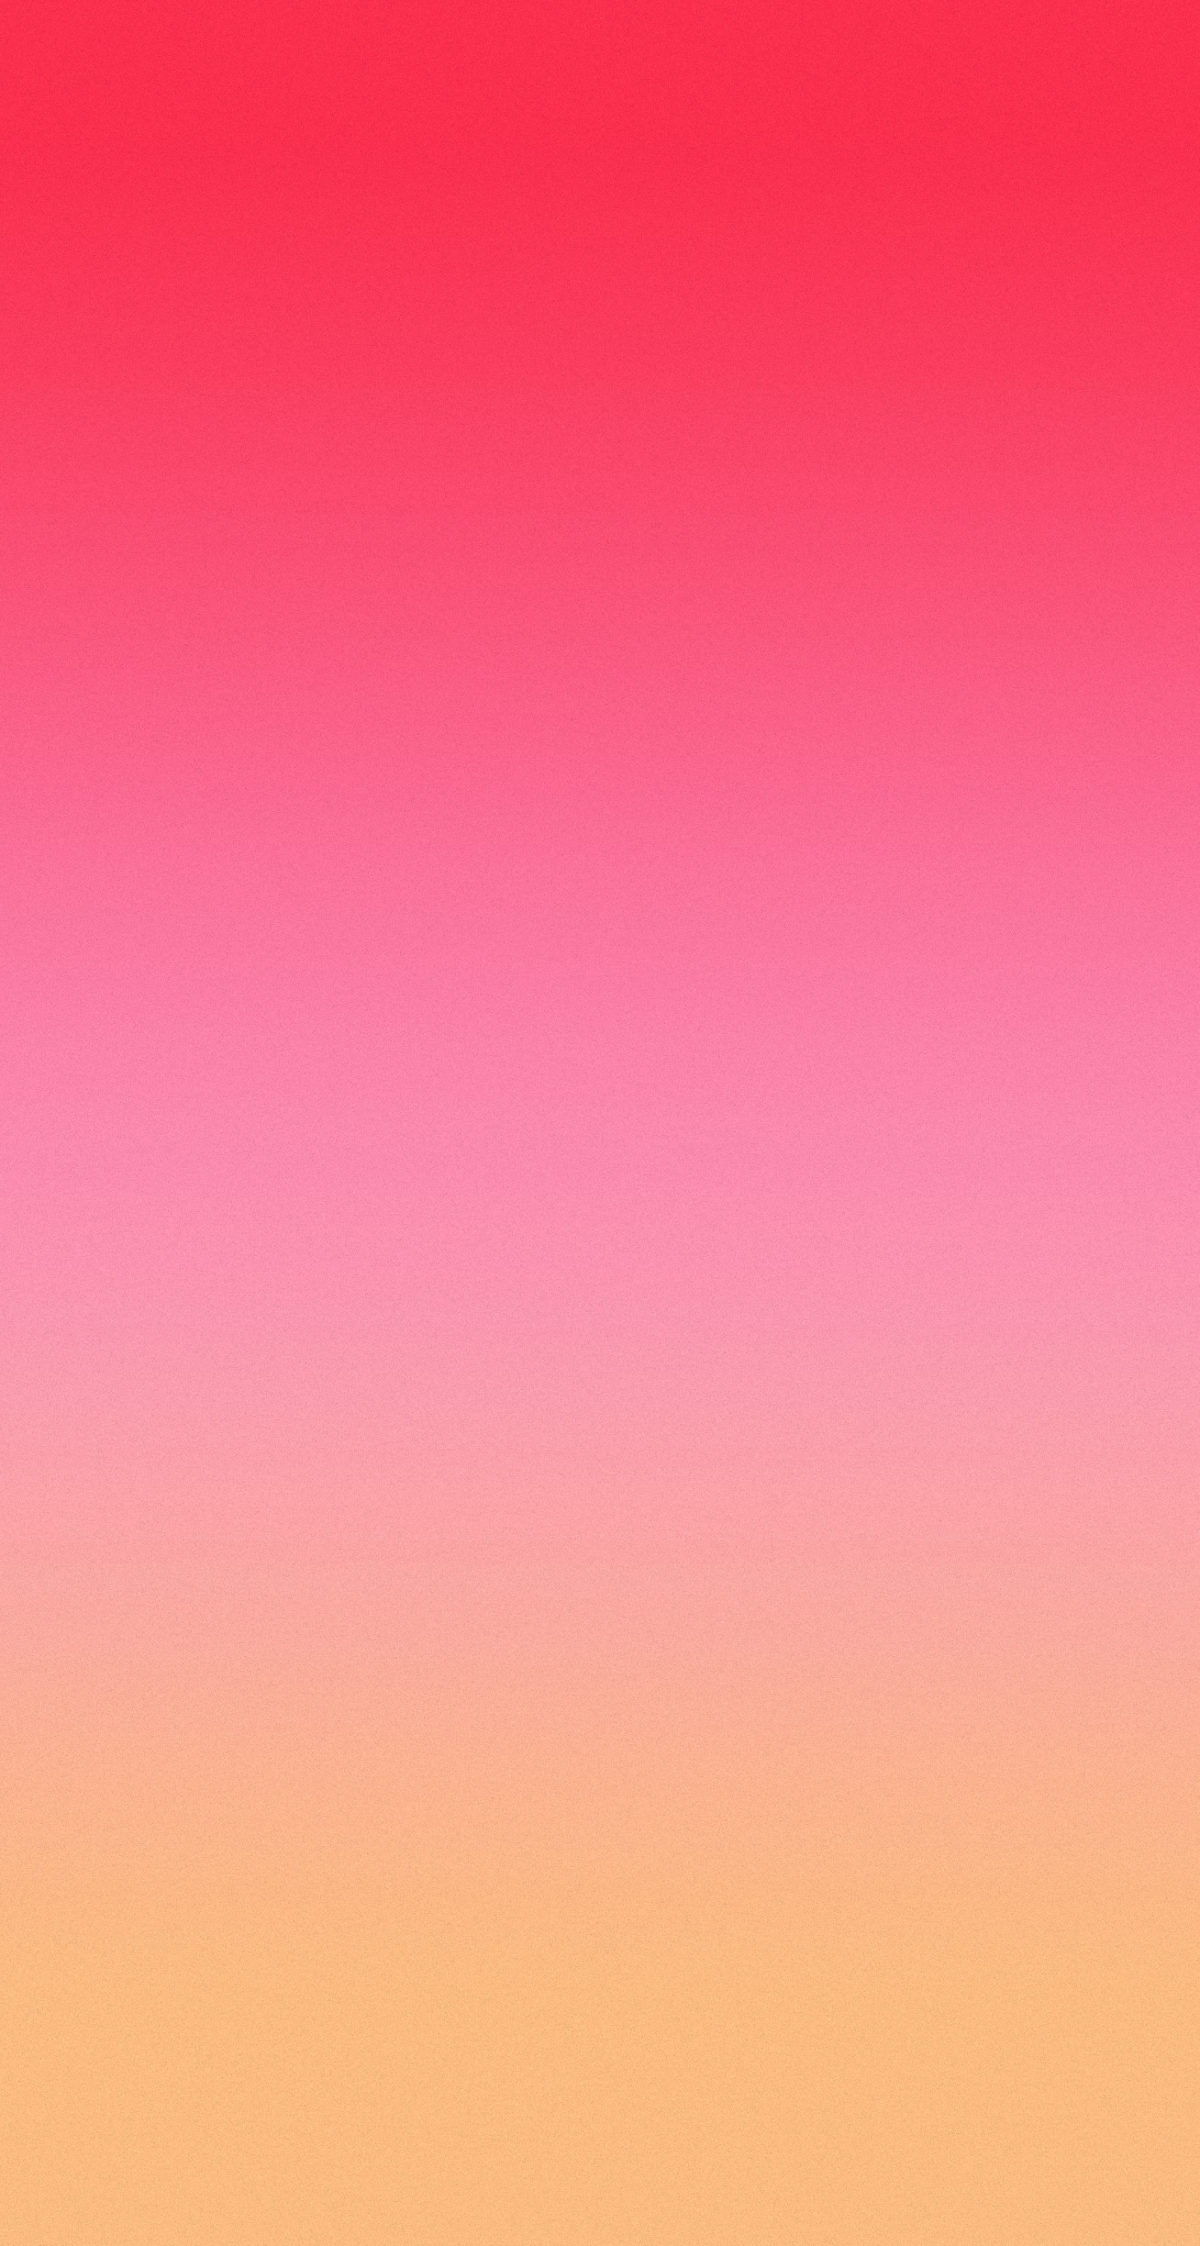 Pink Iphone Background Tumblr Image For Iphone Wallpaper Tumblr Cool Wallpapers 2017 Quotes